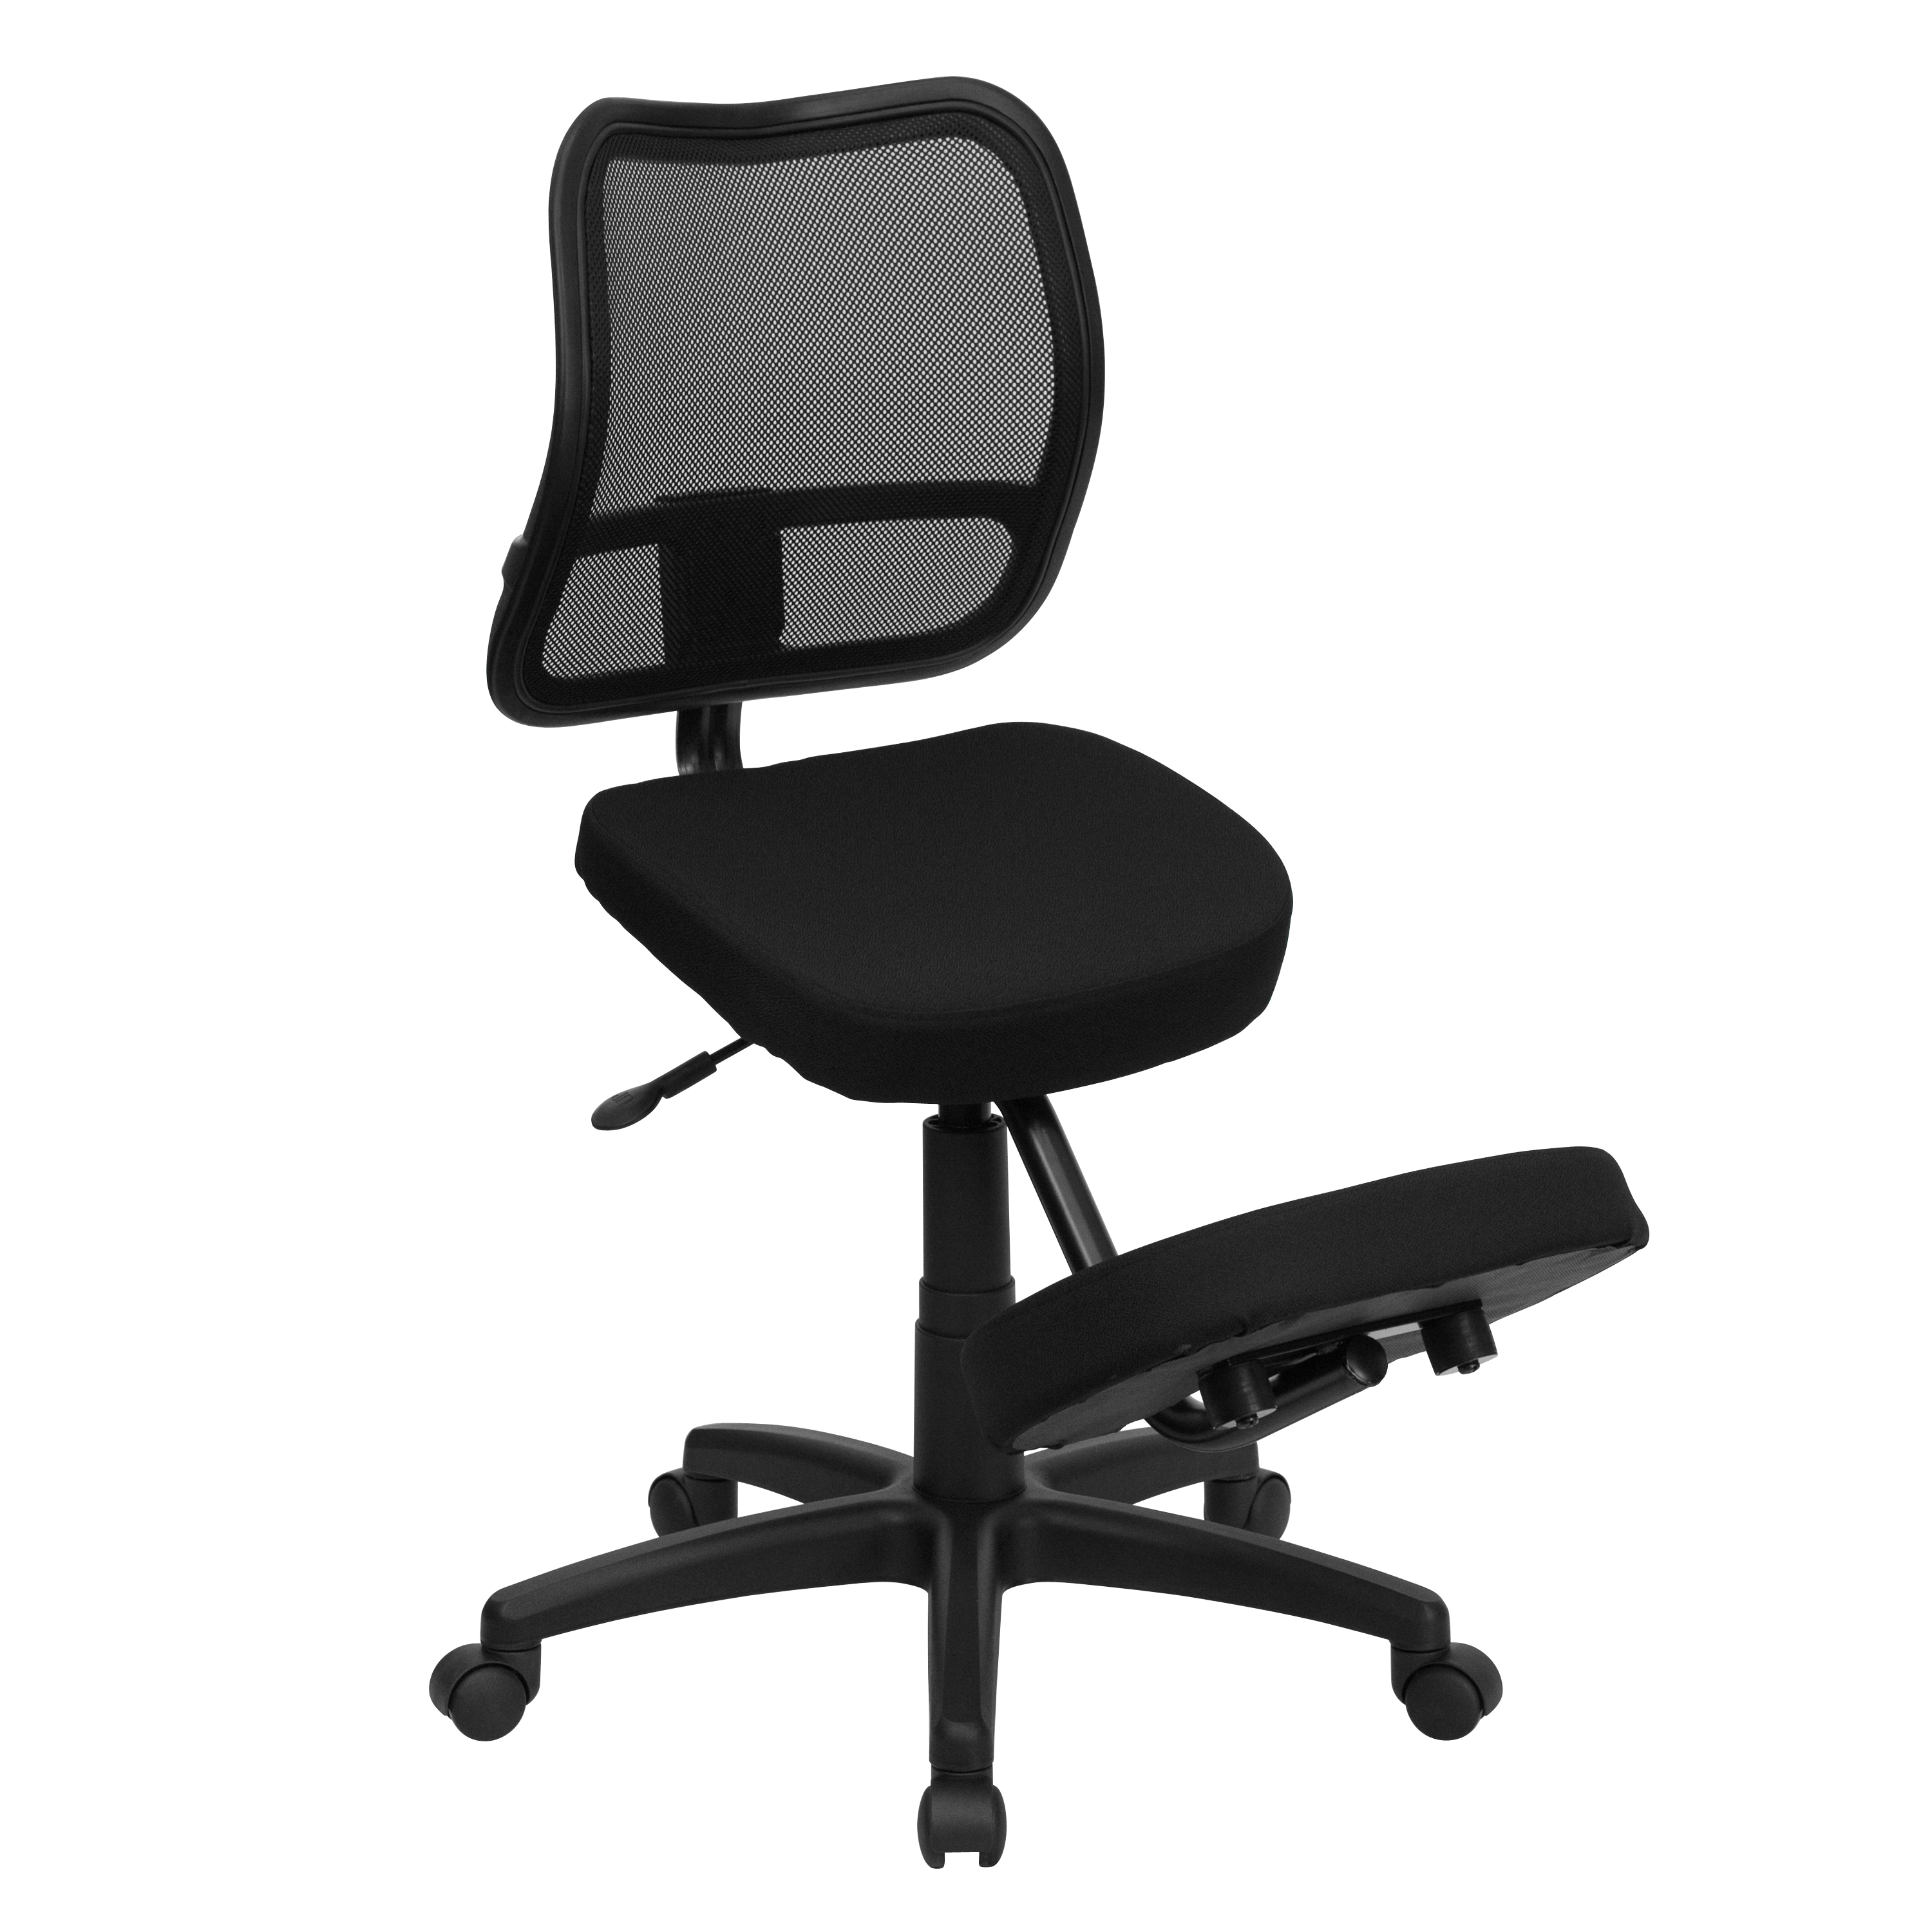 Ergonomic Chair Kneeling Flash Mobile Ergonomic Kneeling Task Chair With Black